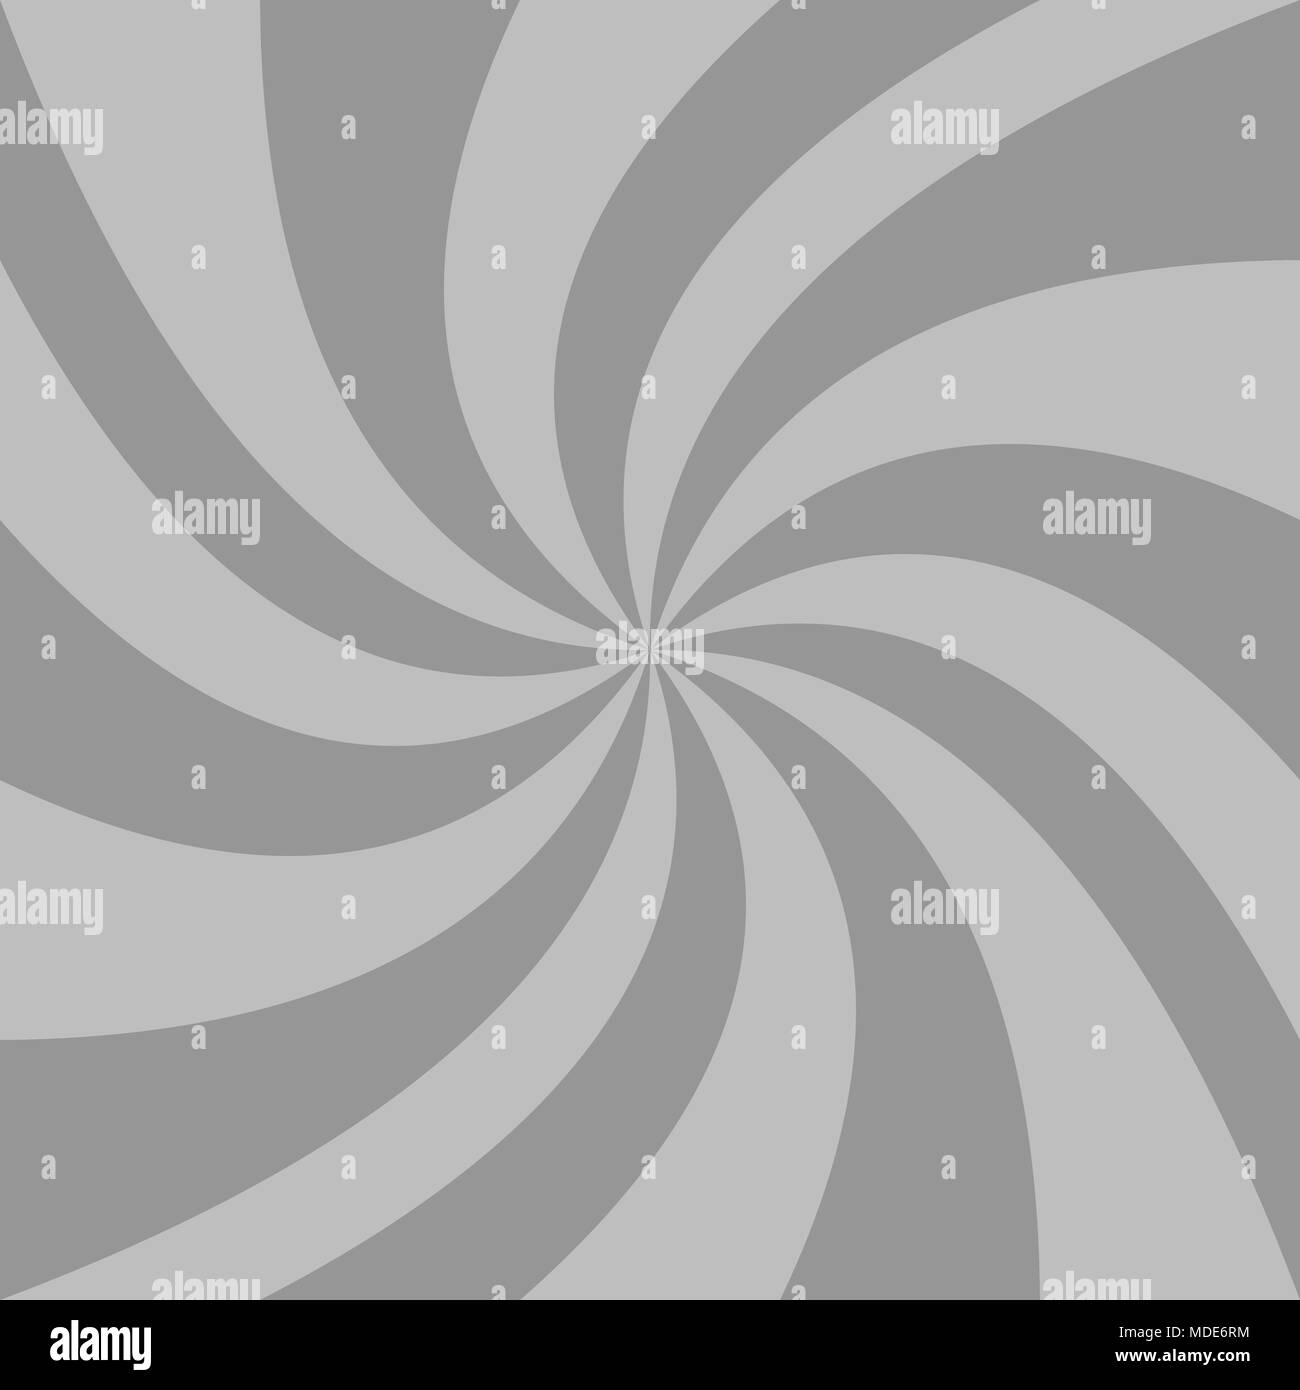 Spiral background from grey curved ray stripes - Stock Image